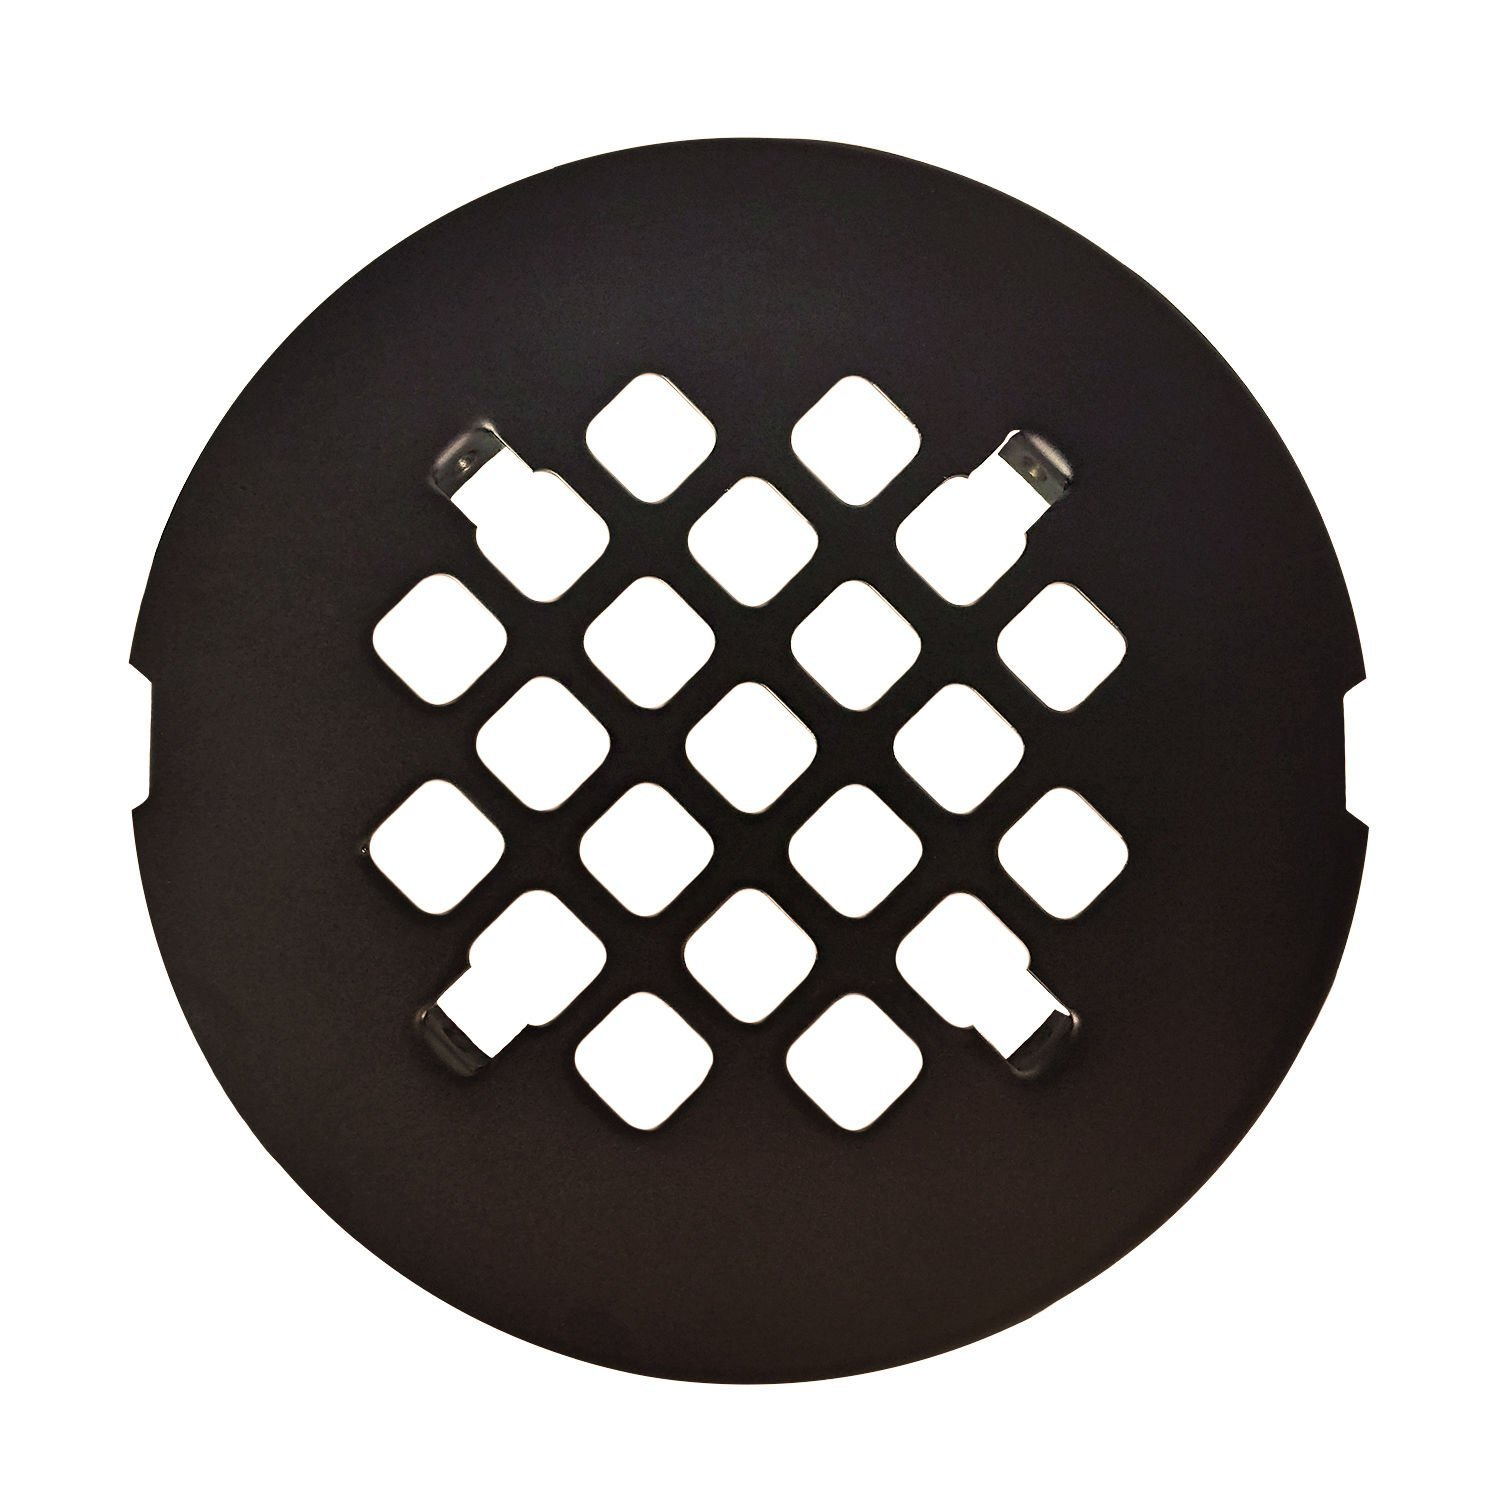 Oil Rubbed Bronze Round SNAP-IN Shower Drain Grate 4-1/4'' Replacement Cover / Shower Strainer by iyax